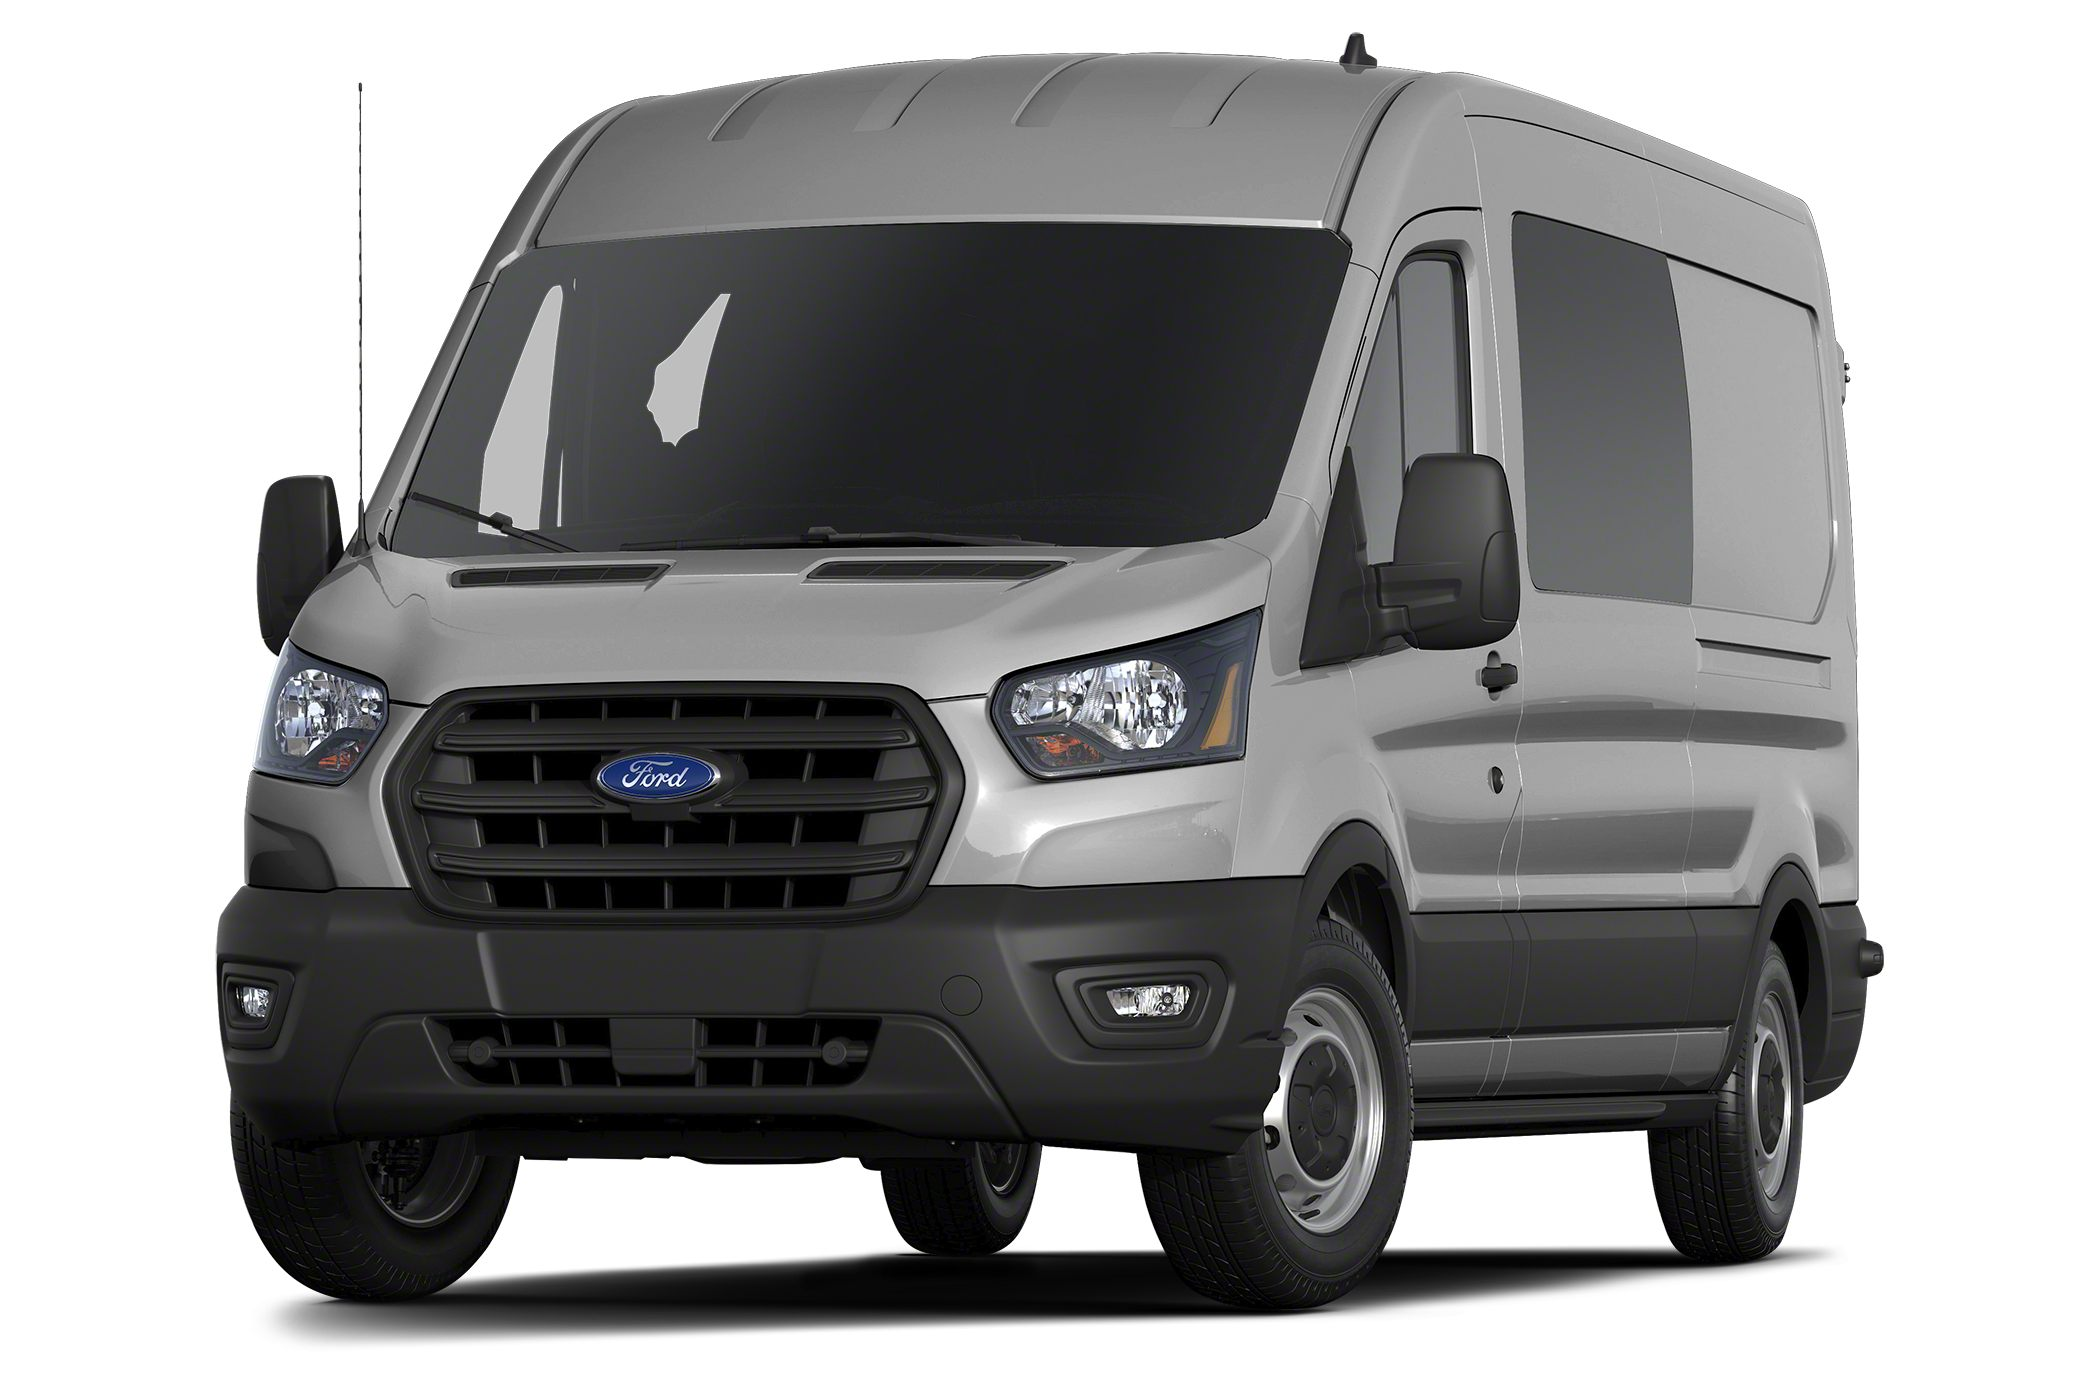 2020 ford transit 350 crew pictures http mcrouter digimarc com imagebridge router mcrouter asp p source 101 p id 10101 p typ 4 p did 0 p cpy 2017 p att 5